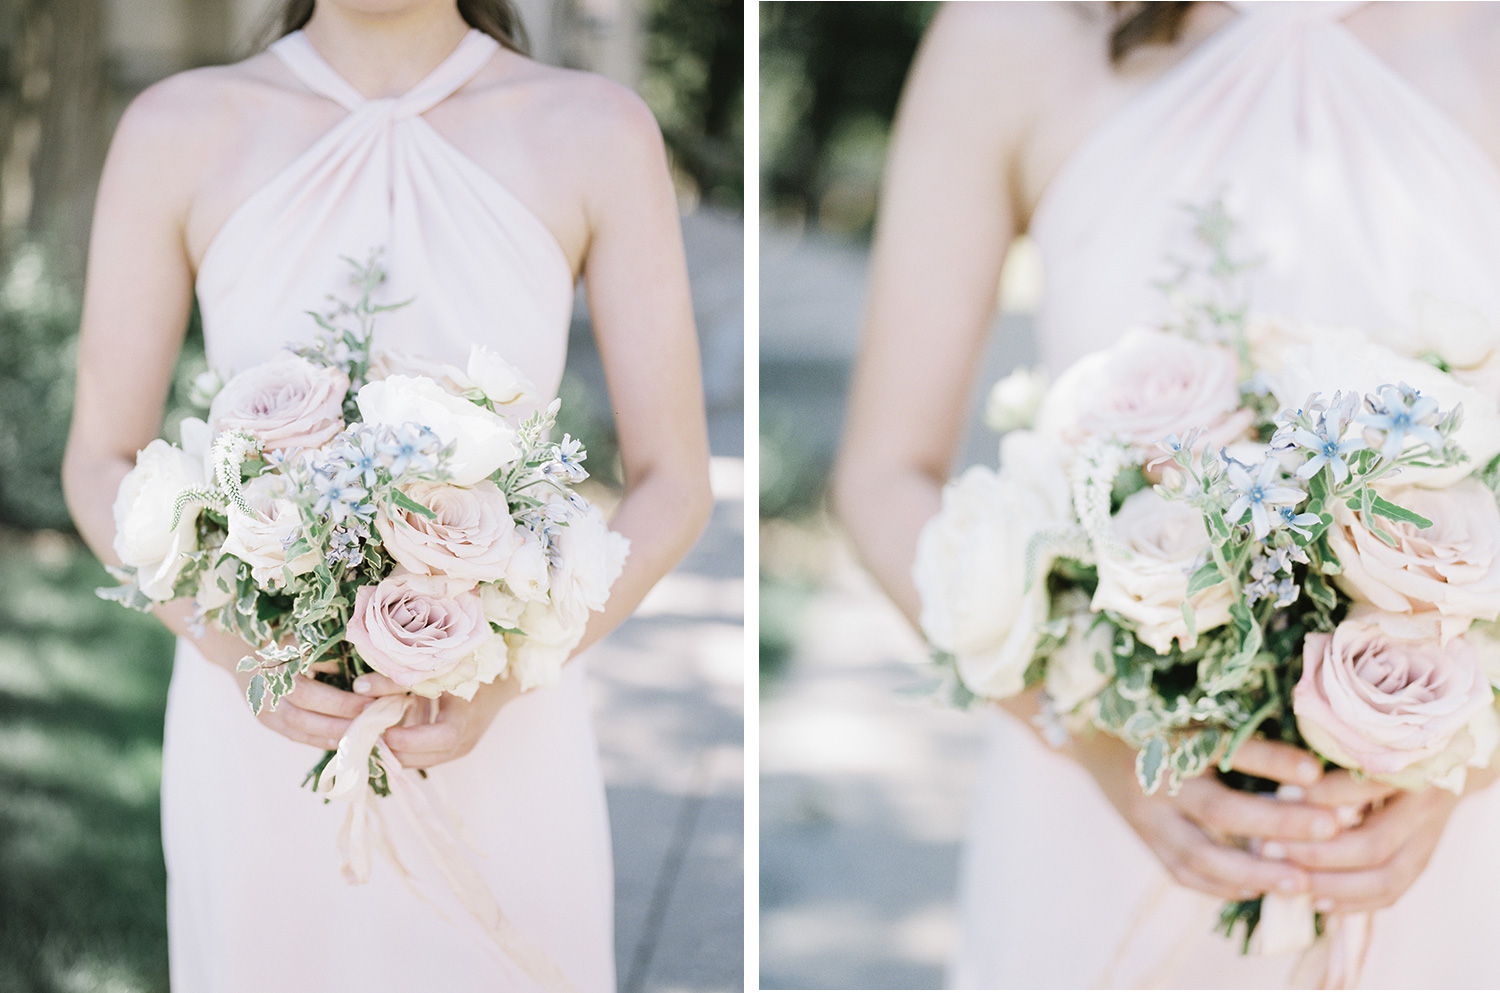 A bridesmaid in a blush dress holds a lush bouquet with pink garden roses, white ranunculus, and blue flowers in Ann Arbor